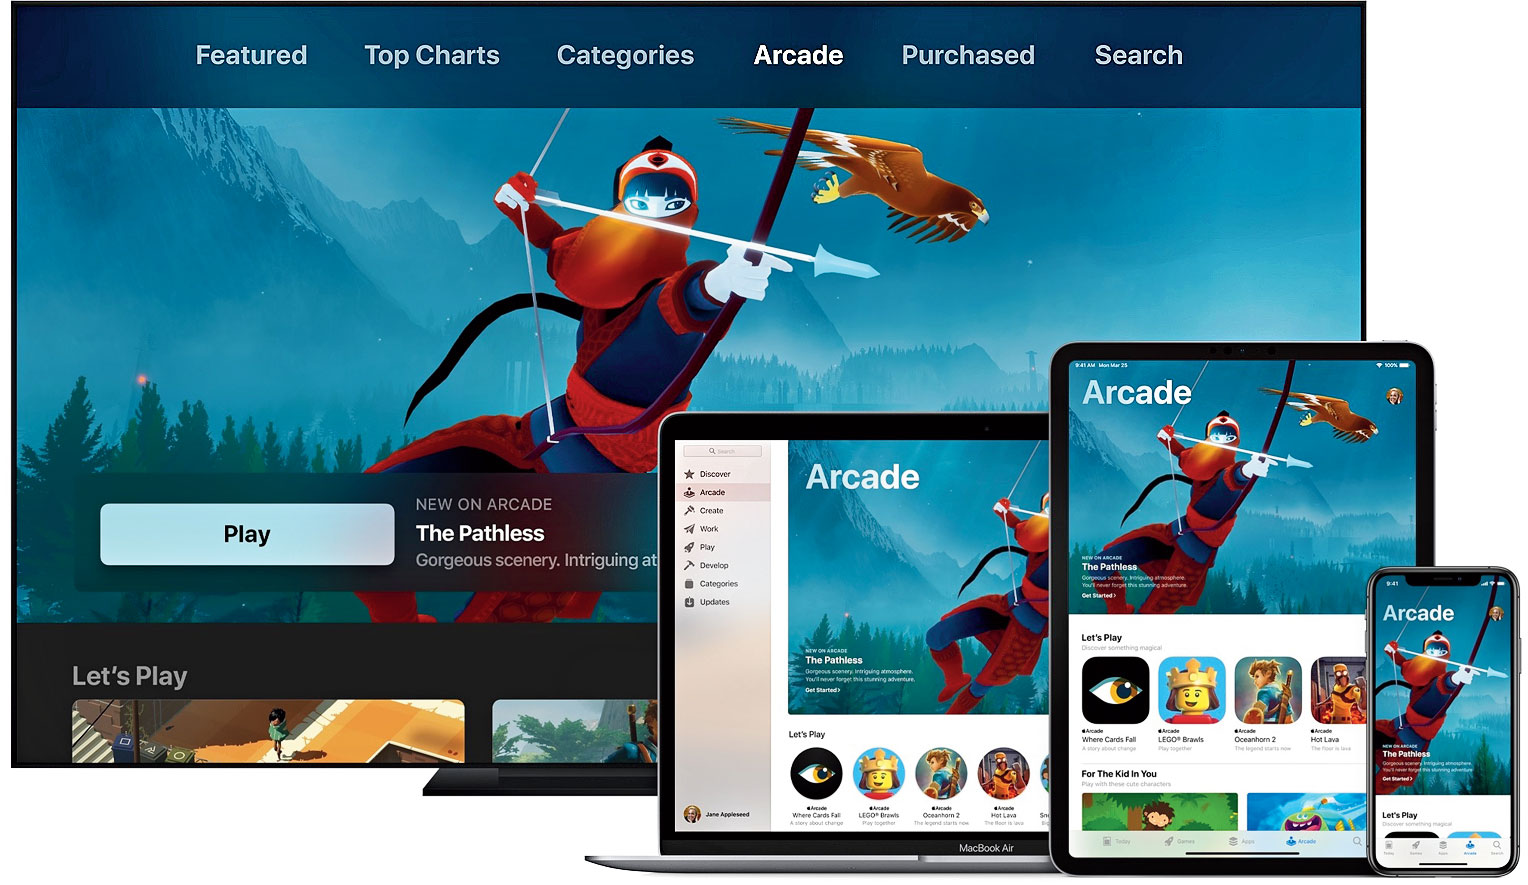 Freemium games are not going to disappear right away but Apple Arcade has created a space for developers to experiment while ensuring that users will not have to spend more than the subscription no matter the time spent on the platform. Expect copycats because Arcade is certainly a game changer.